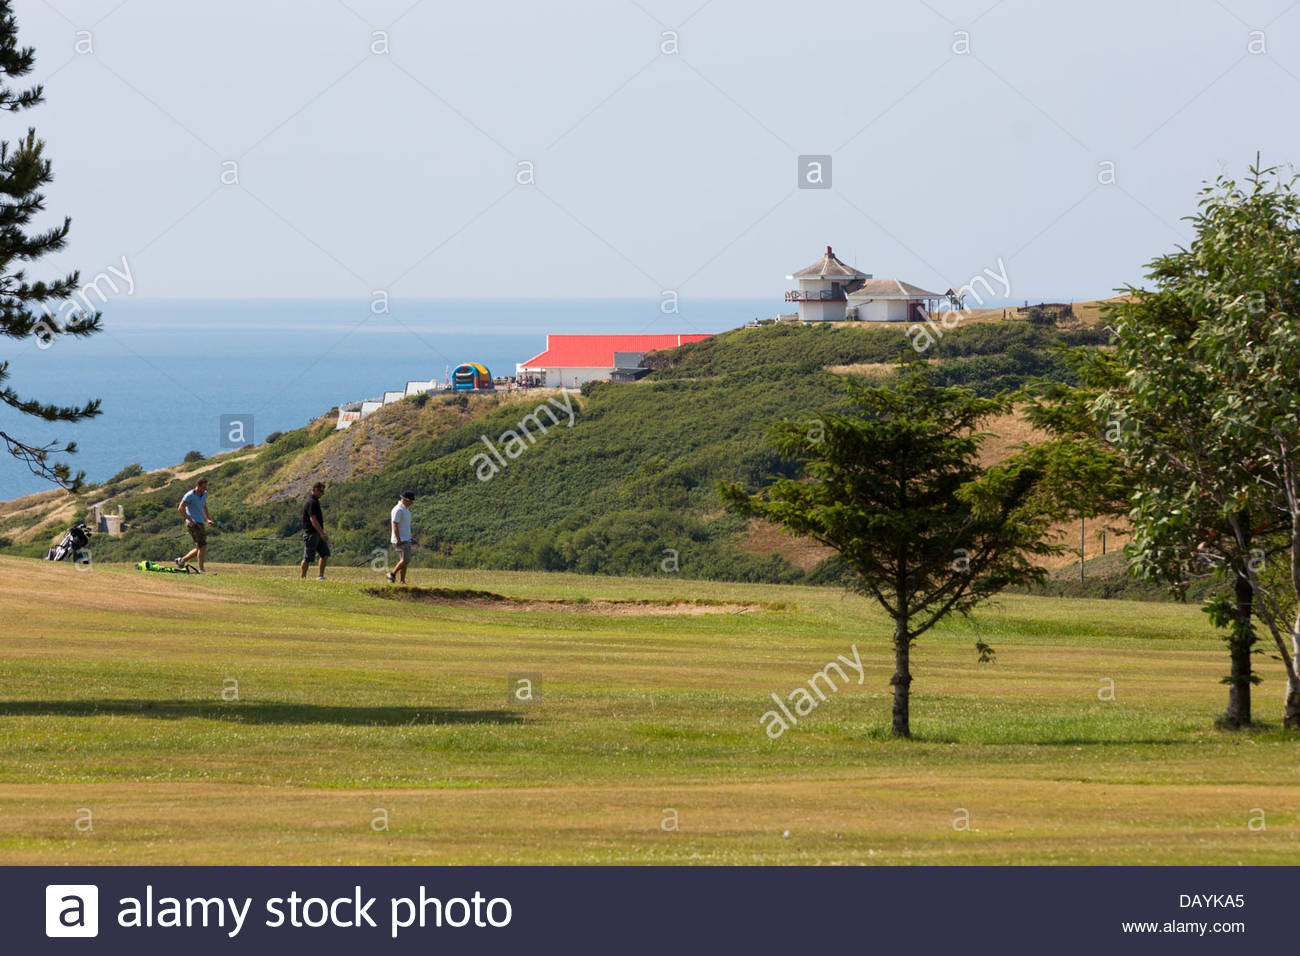 Golfers at Aberystwyth golf course on a bright sunny day with the sea, camera obscura and constitution hill in the - Stock Image